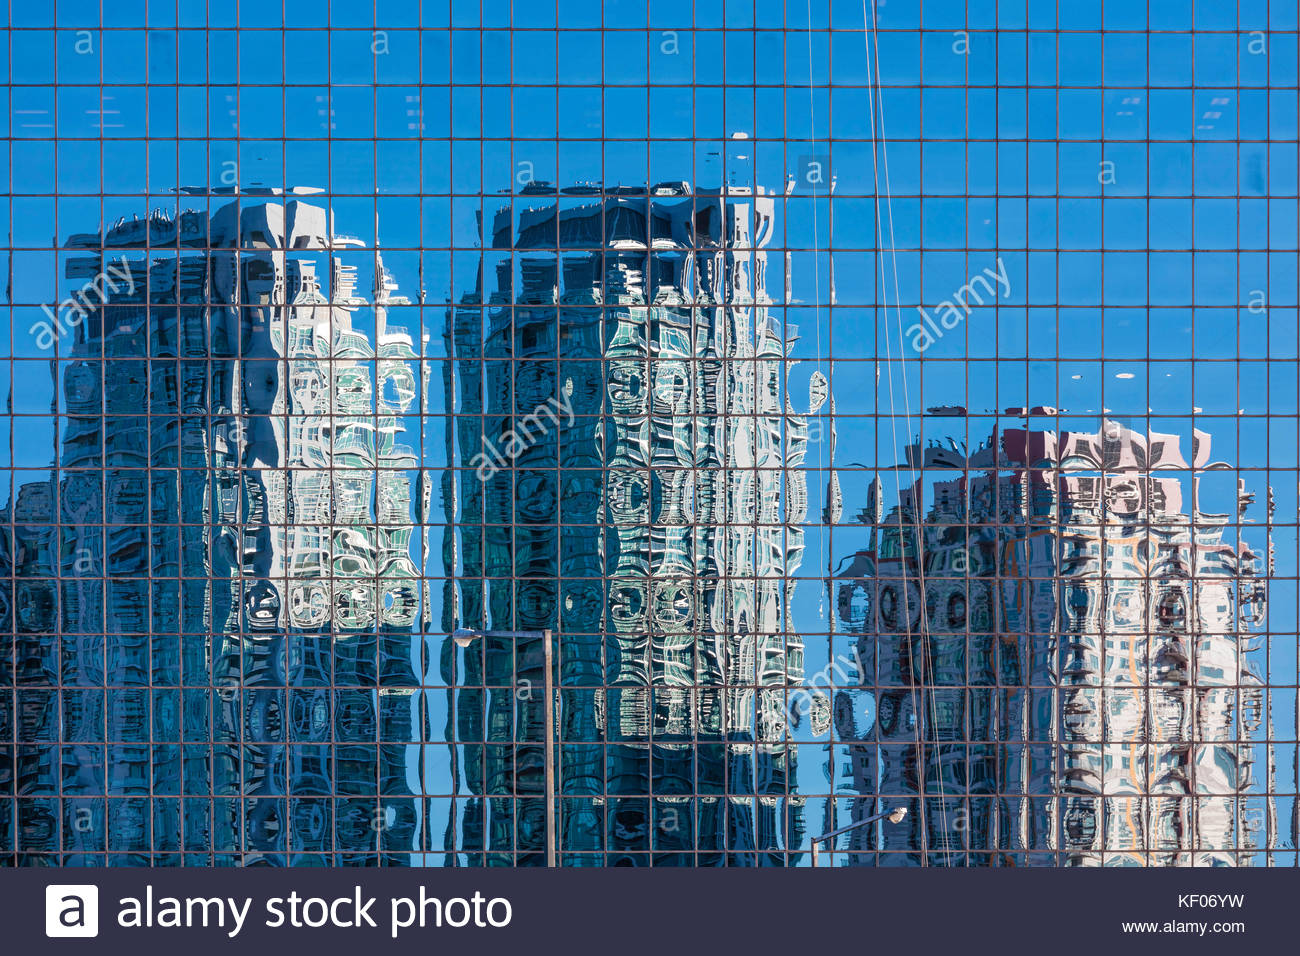 Curtain Wall Of Glass Stock Photos & Curtain Wall Of Glass Stock ...